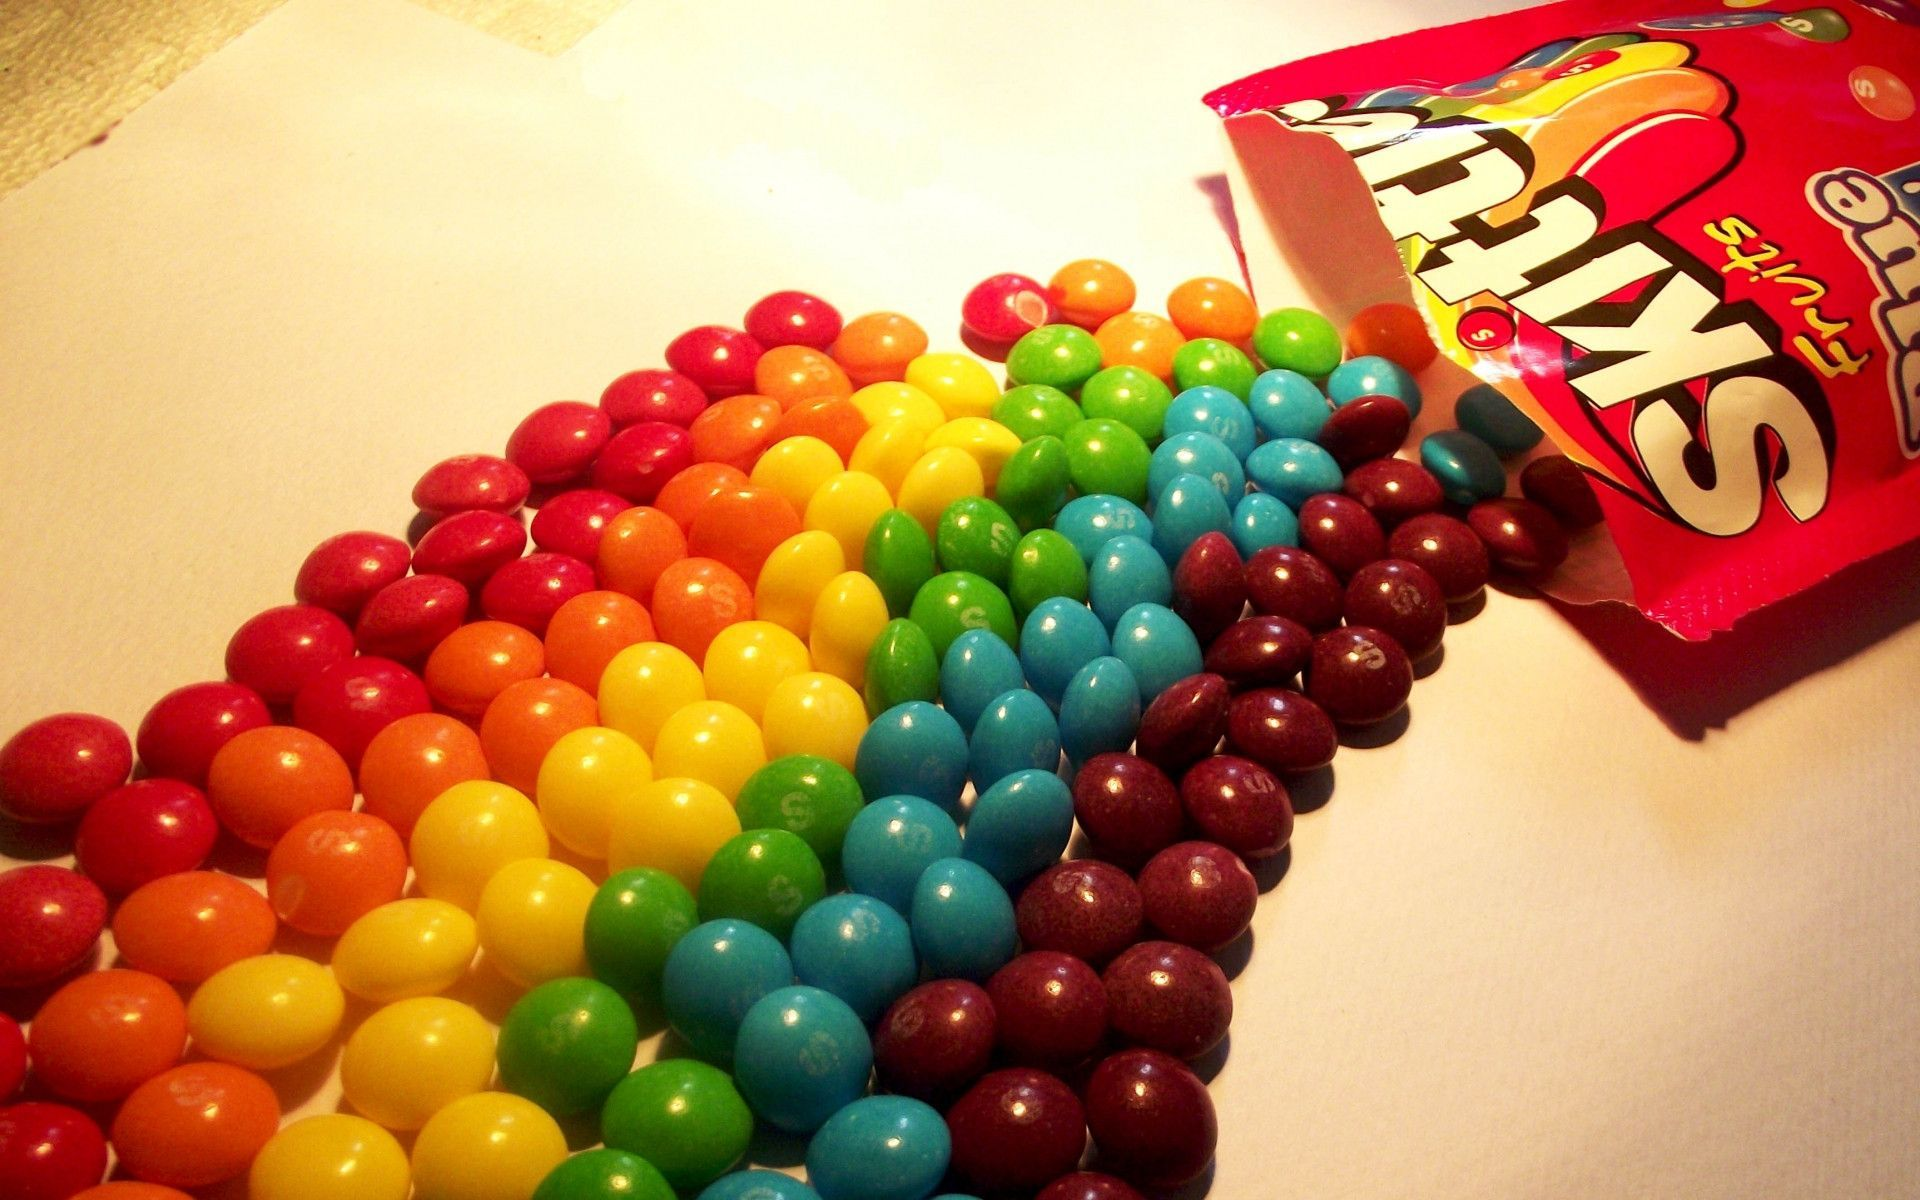 images of different types of candy